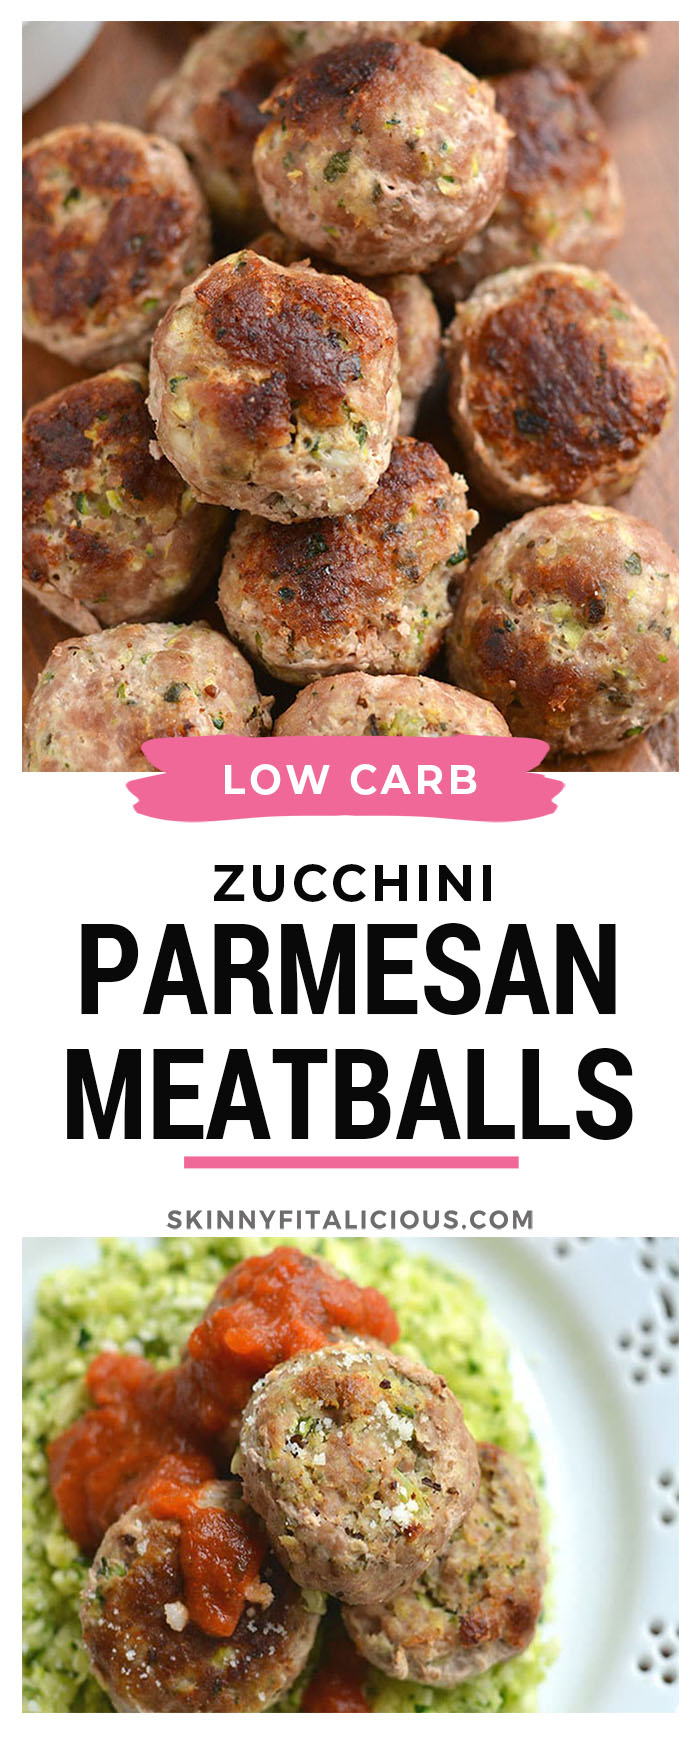 Healthy Zucchini Parmesan Meatballs! Baked in less than 30 minutes and freezable. These meatballs are perfect for meal prepping, a quick weeknight dinner or serving as an appetizer. Gluten Free + Low Calorie